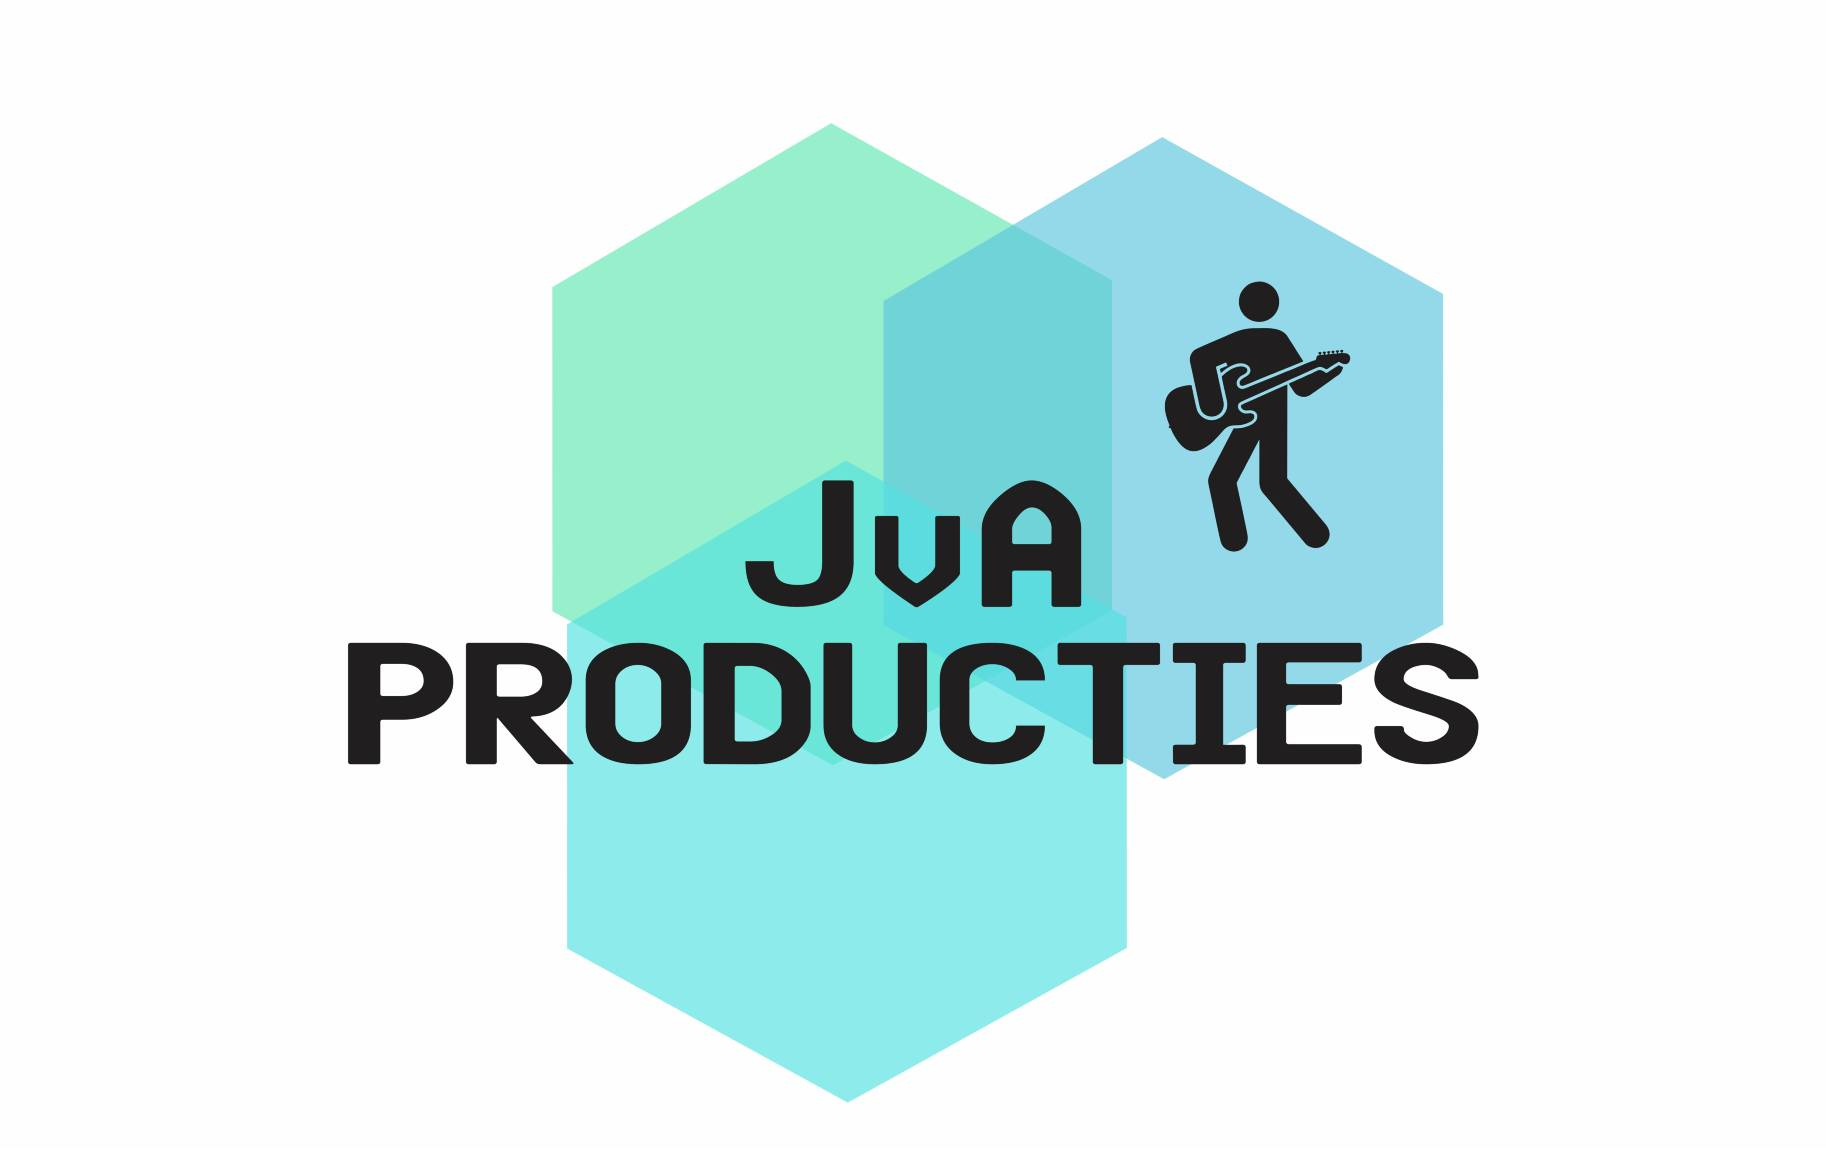 JvA Producties